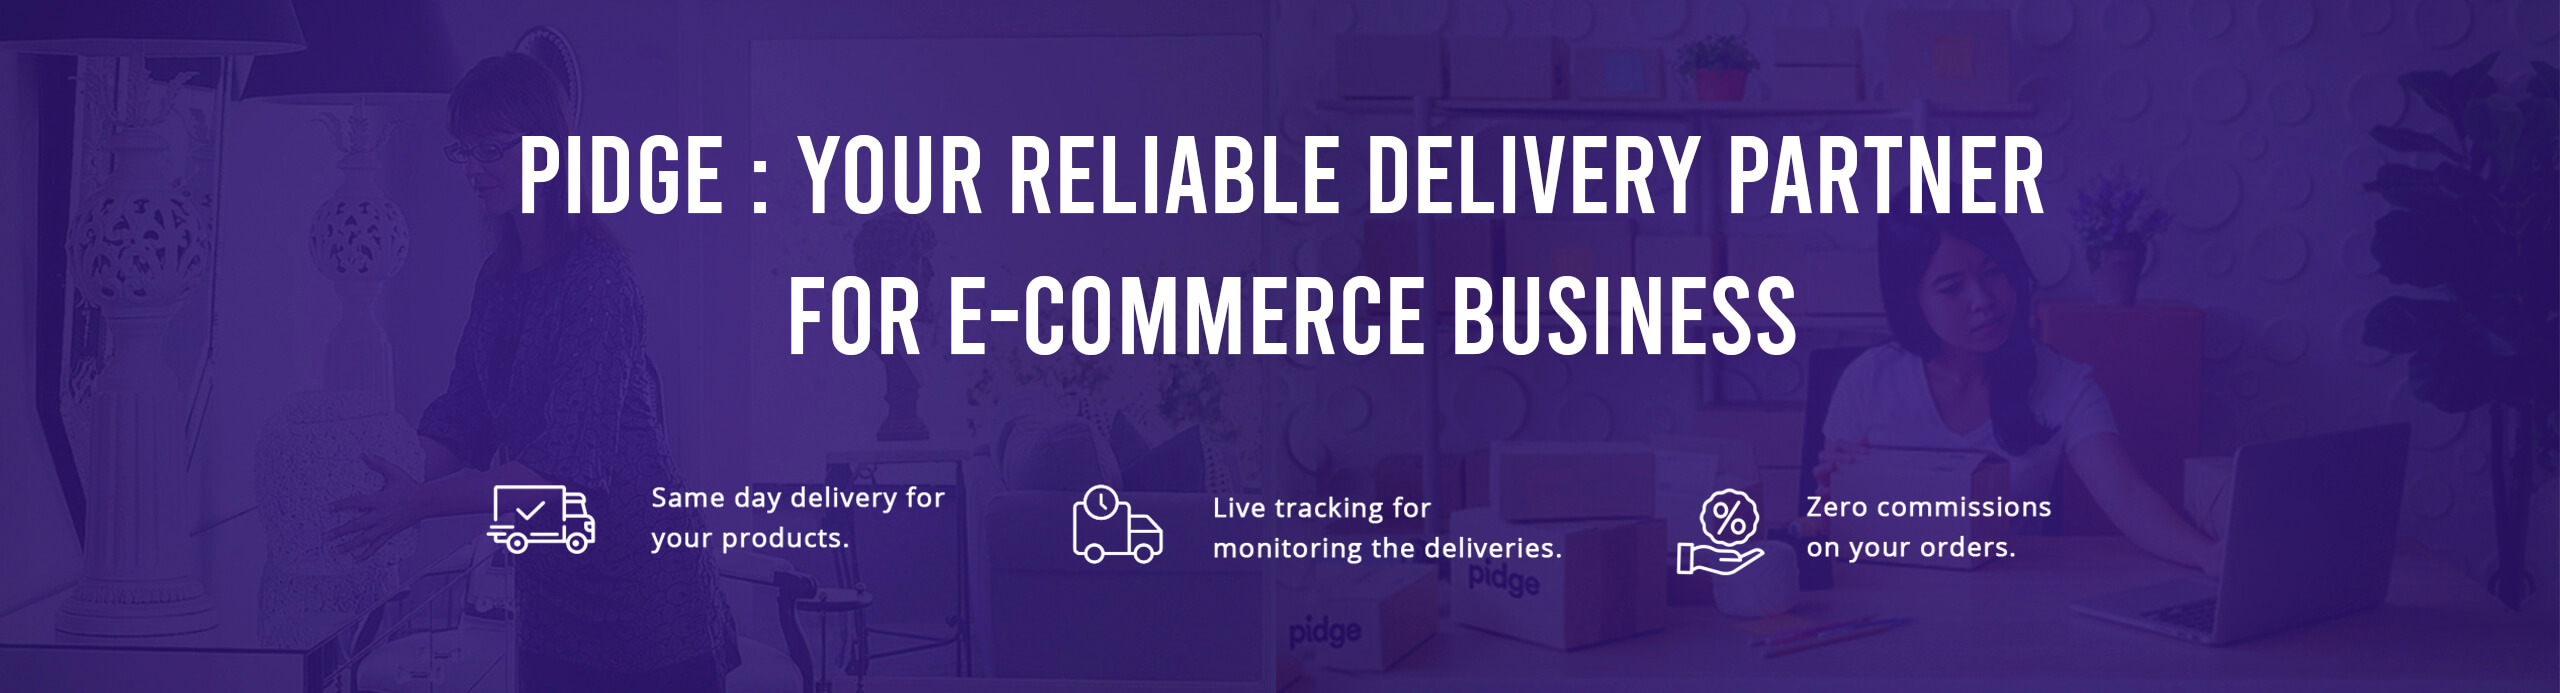 WHY YOUR E-COMMERCE ENTERPRISE NEEDS A RELIABLE DELIVERY PARTNER - Pidge